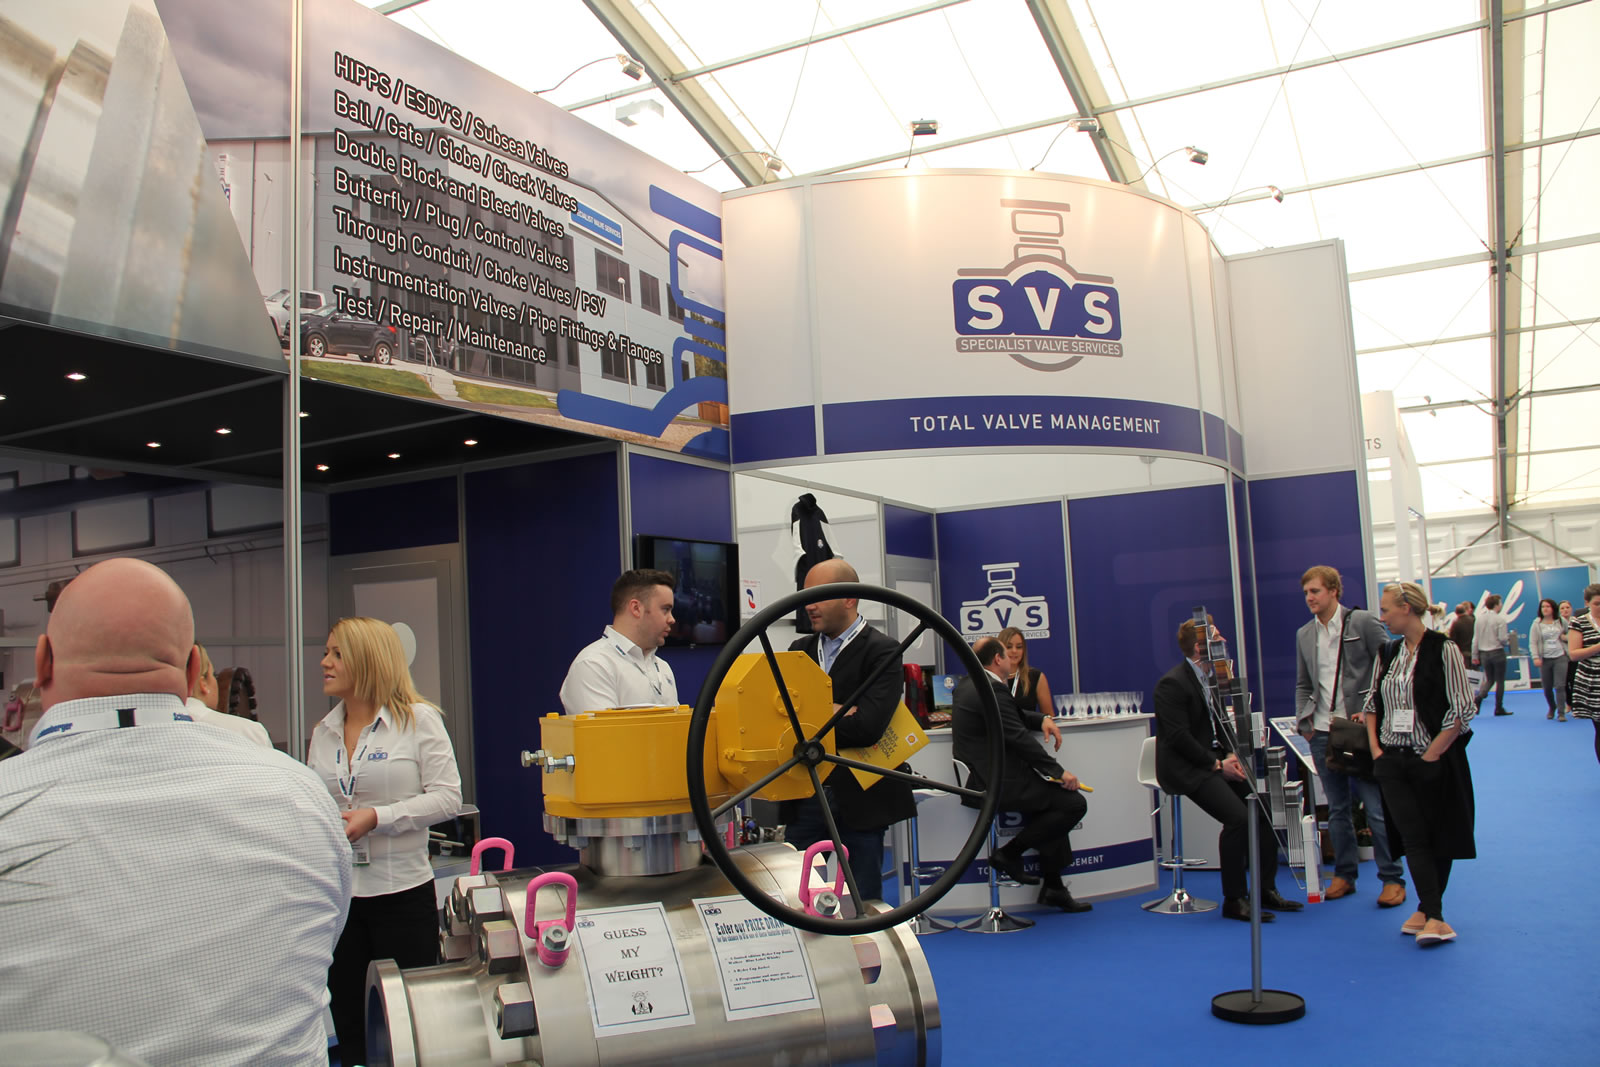 SVS Exhibit at Offshore Europe 2015-image-4